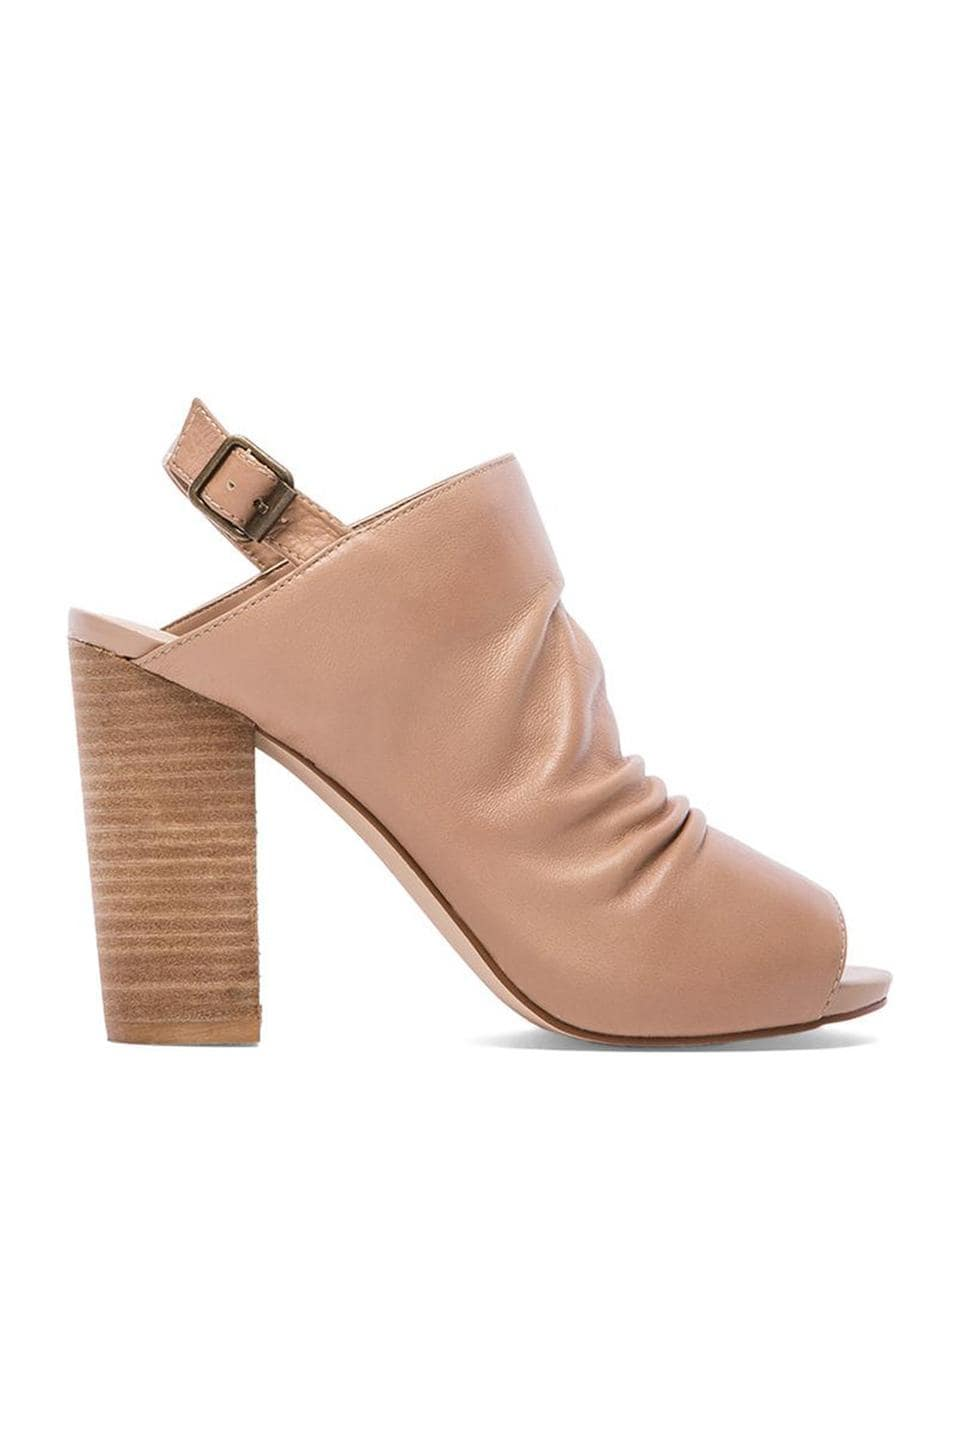 Steven Saliem Heel in Natural Leather